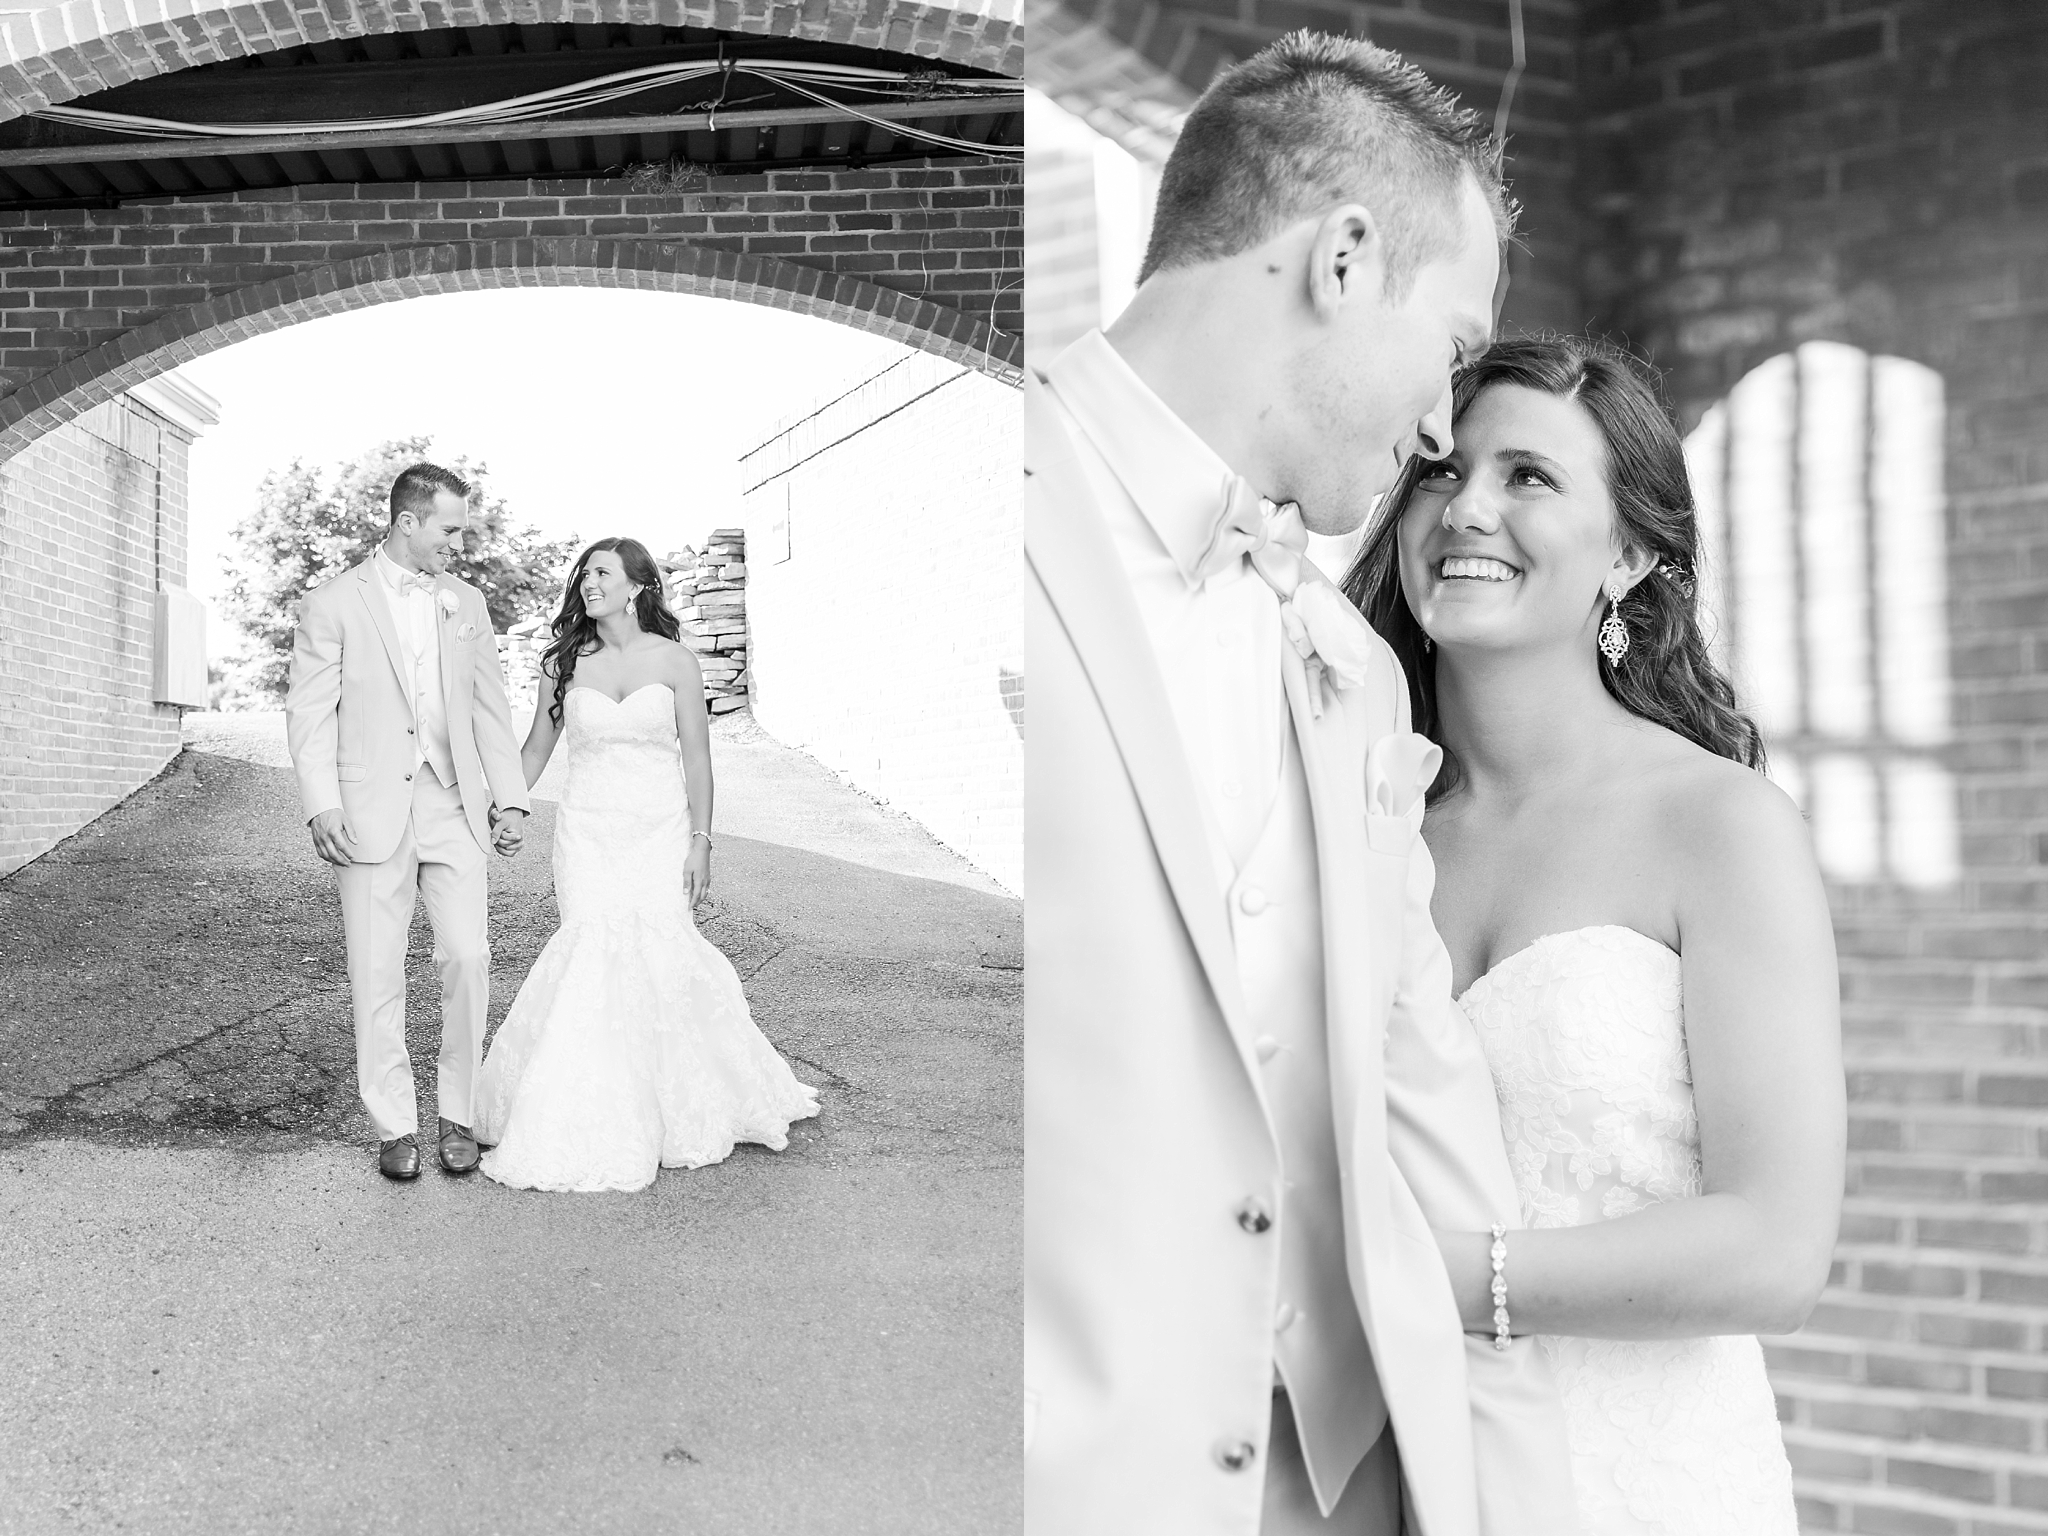 candid-timeless-wedding-photos-at-the-captains-club-in-grand-blanc-michigan-by-courtney-carolyn-photography_0075.jpg